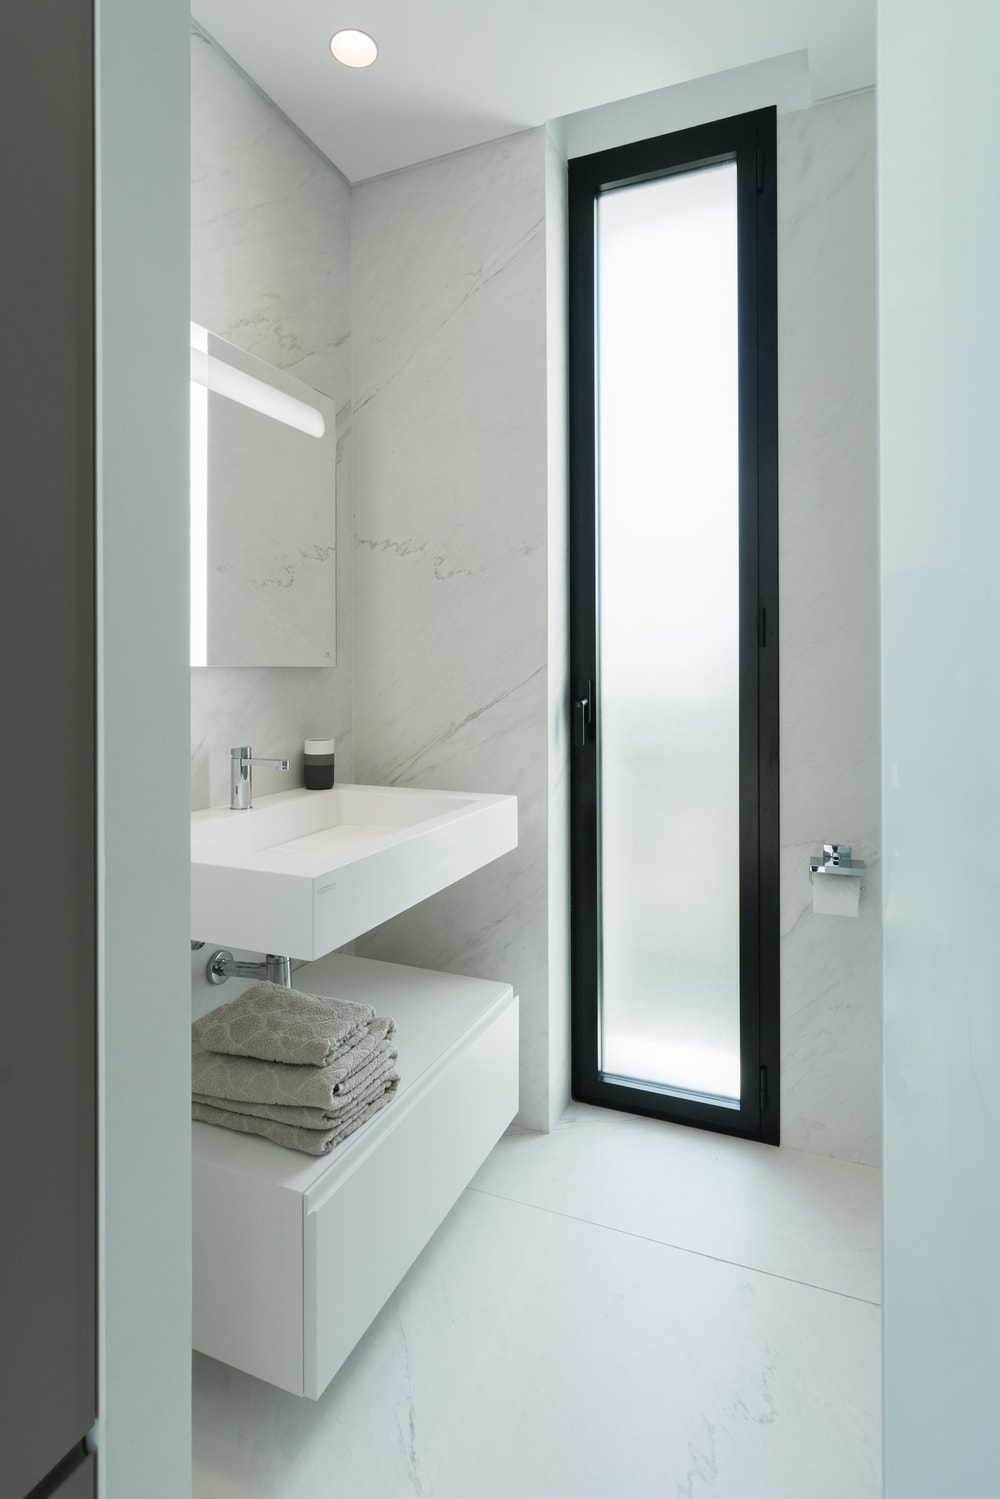 This other bathroom also has a white modern vanity that blends well with the white marble walls brightened further by the tall glass window.